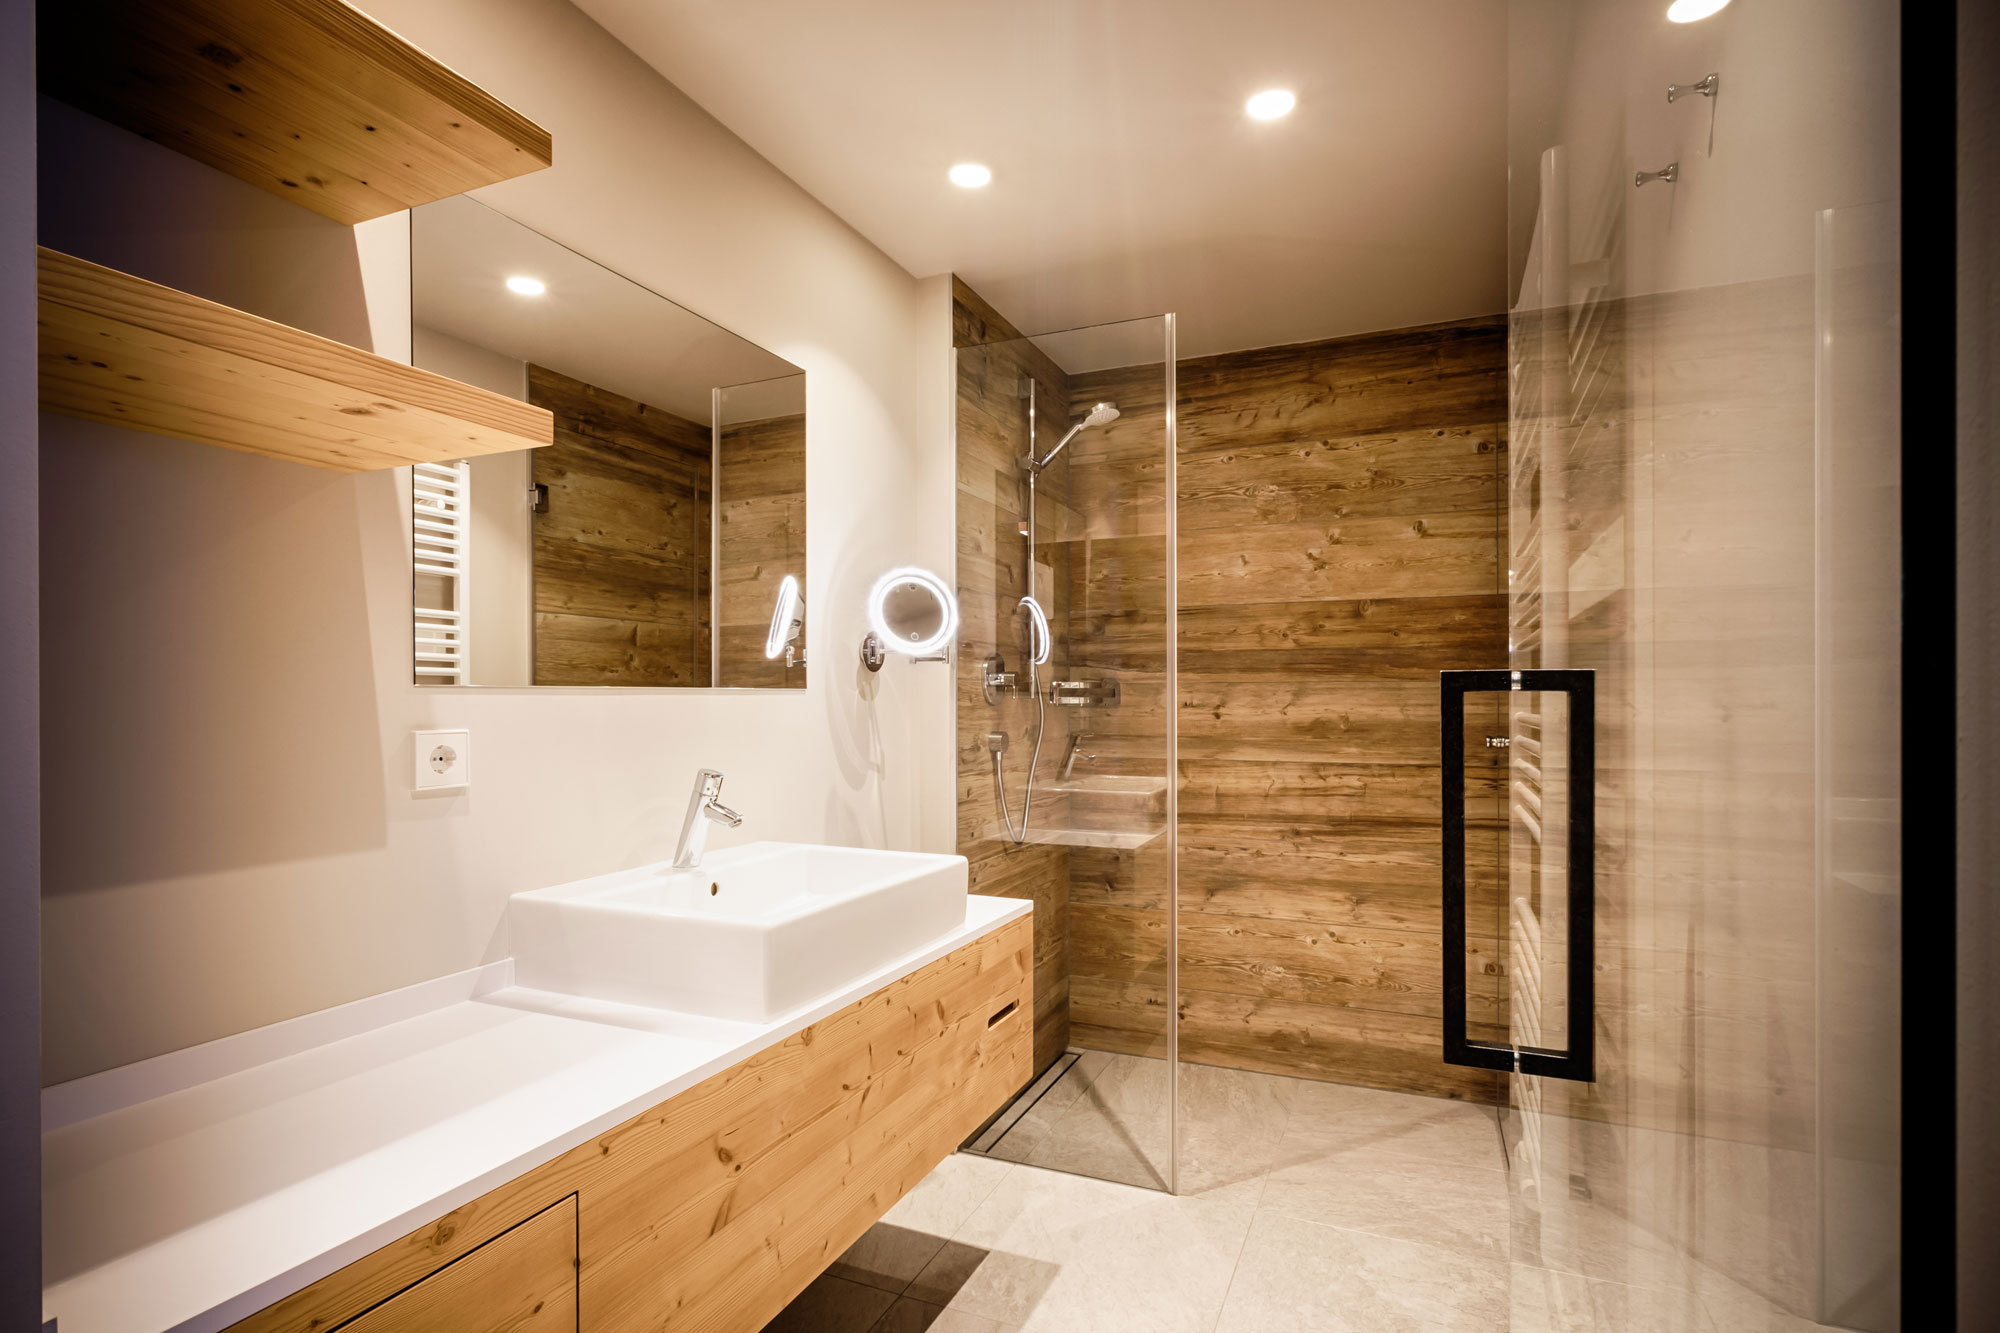 Nuove Camere D Albergo In Val Senales Hotel Chalets Edelweiss